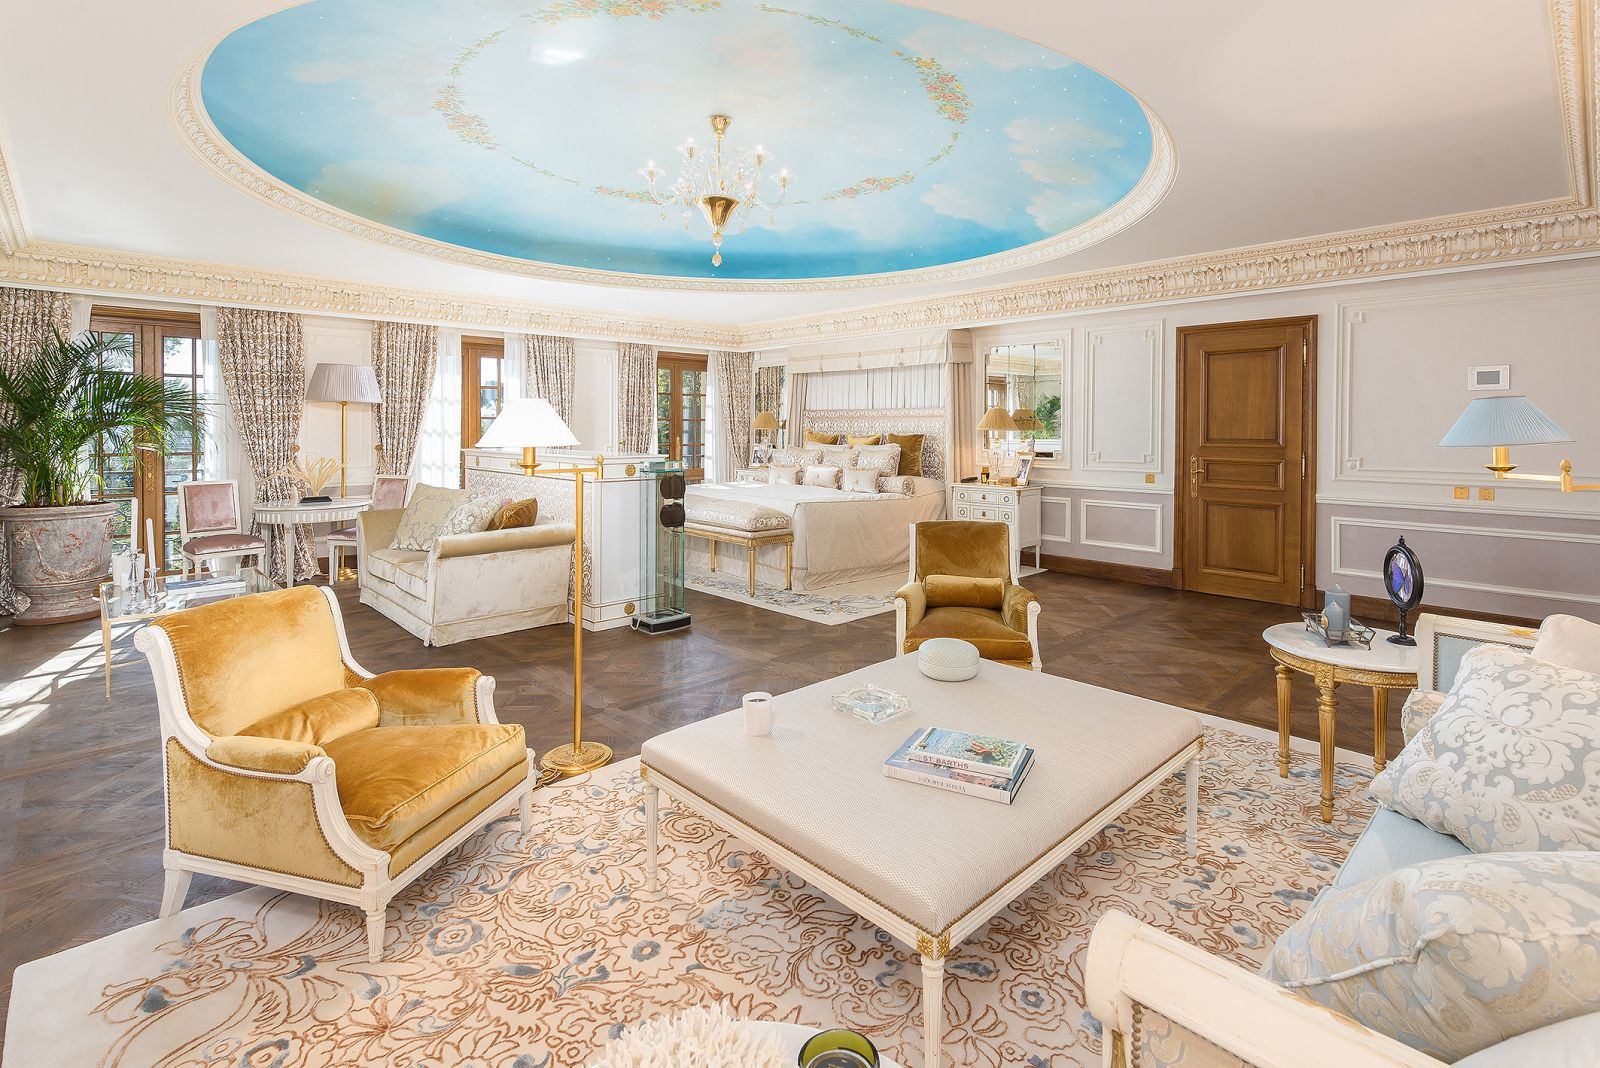 Palais Vénitien, residential palace in Cannes, France | FINEST RESIDENCES